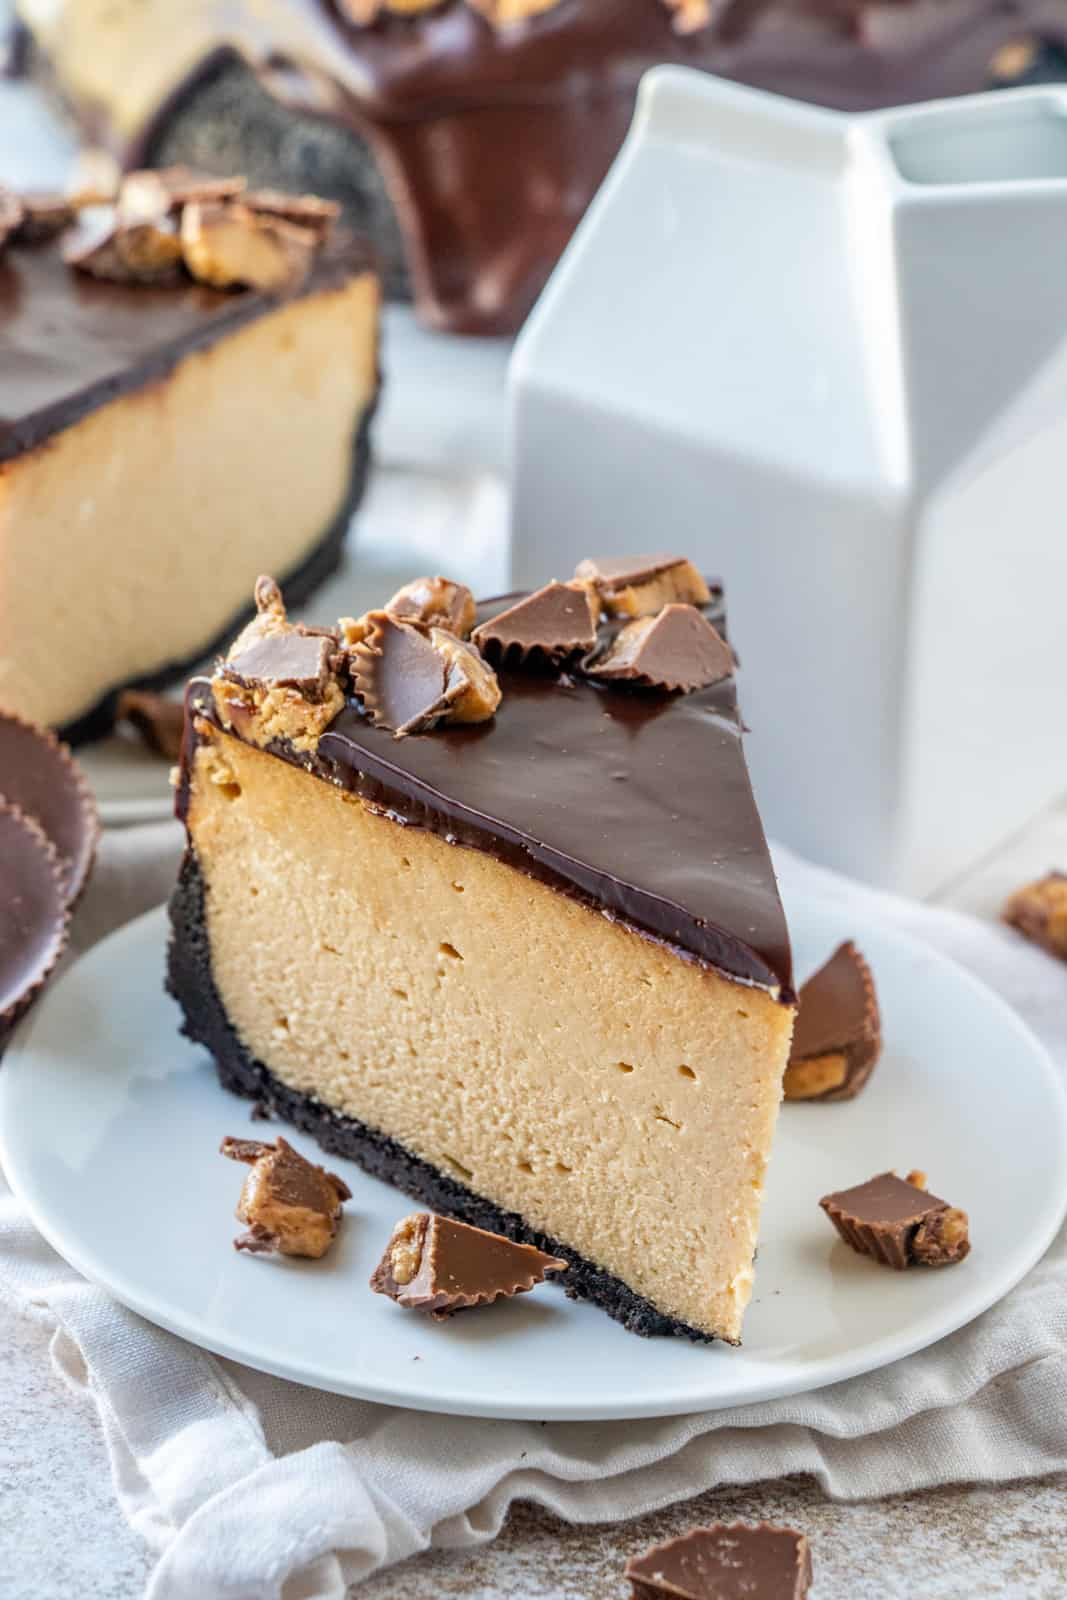 Slice of Peanut Butter Cheesecake on white plate surrounded by diced peanut butter cups